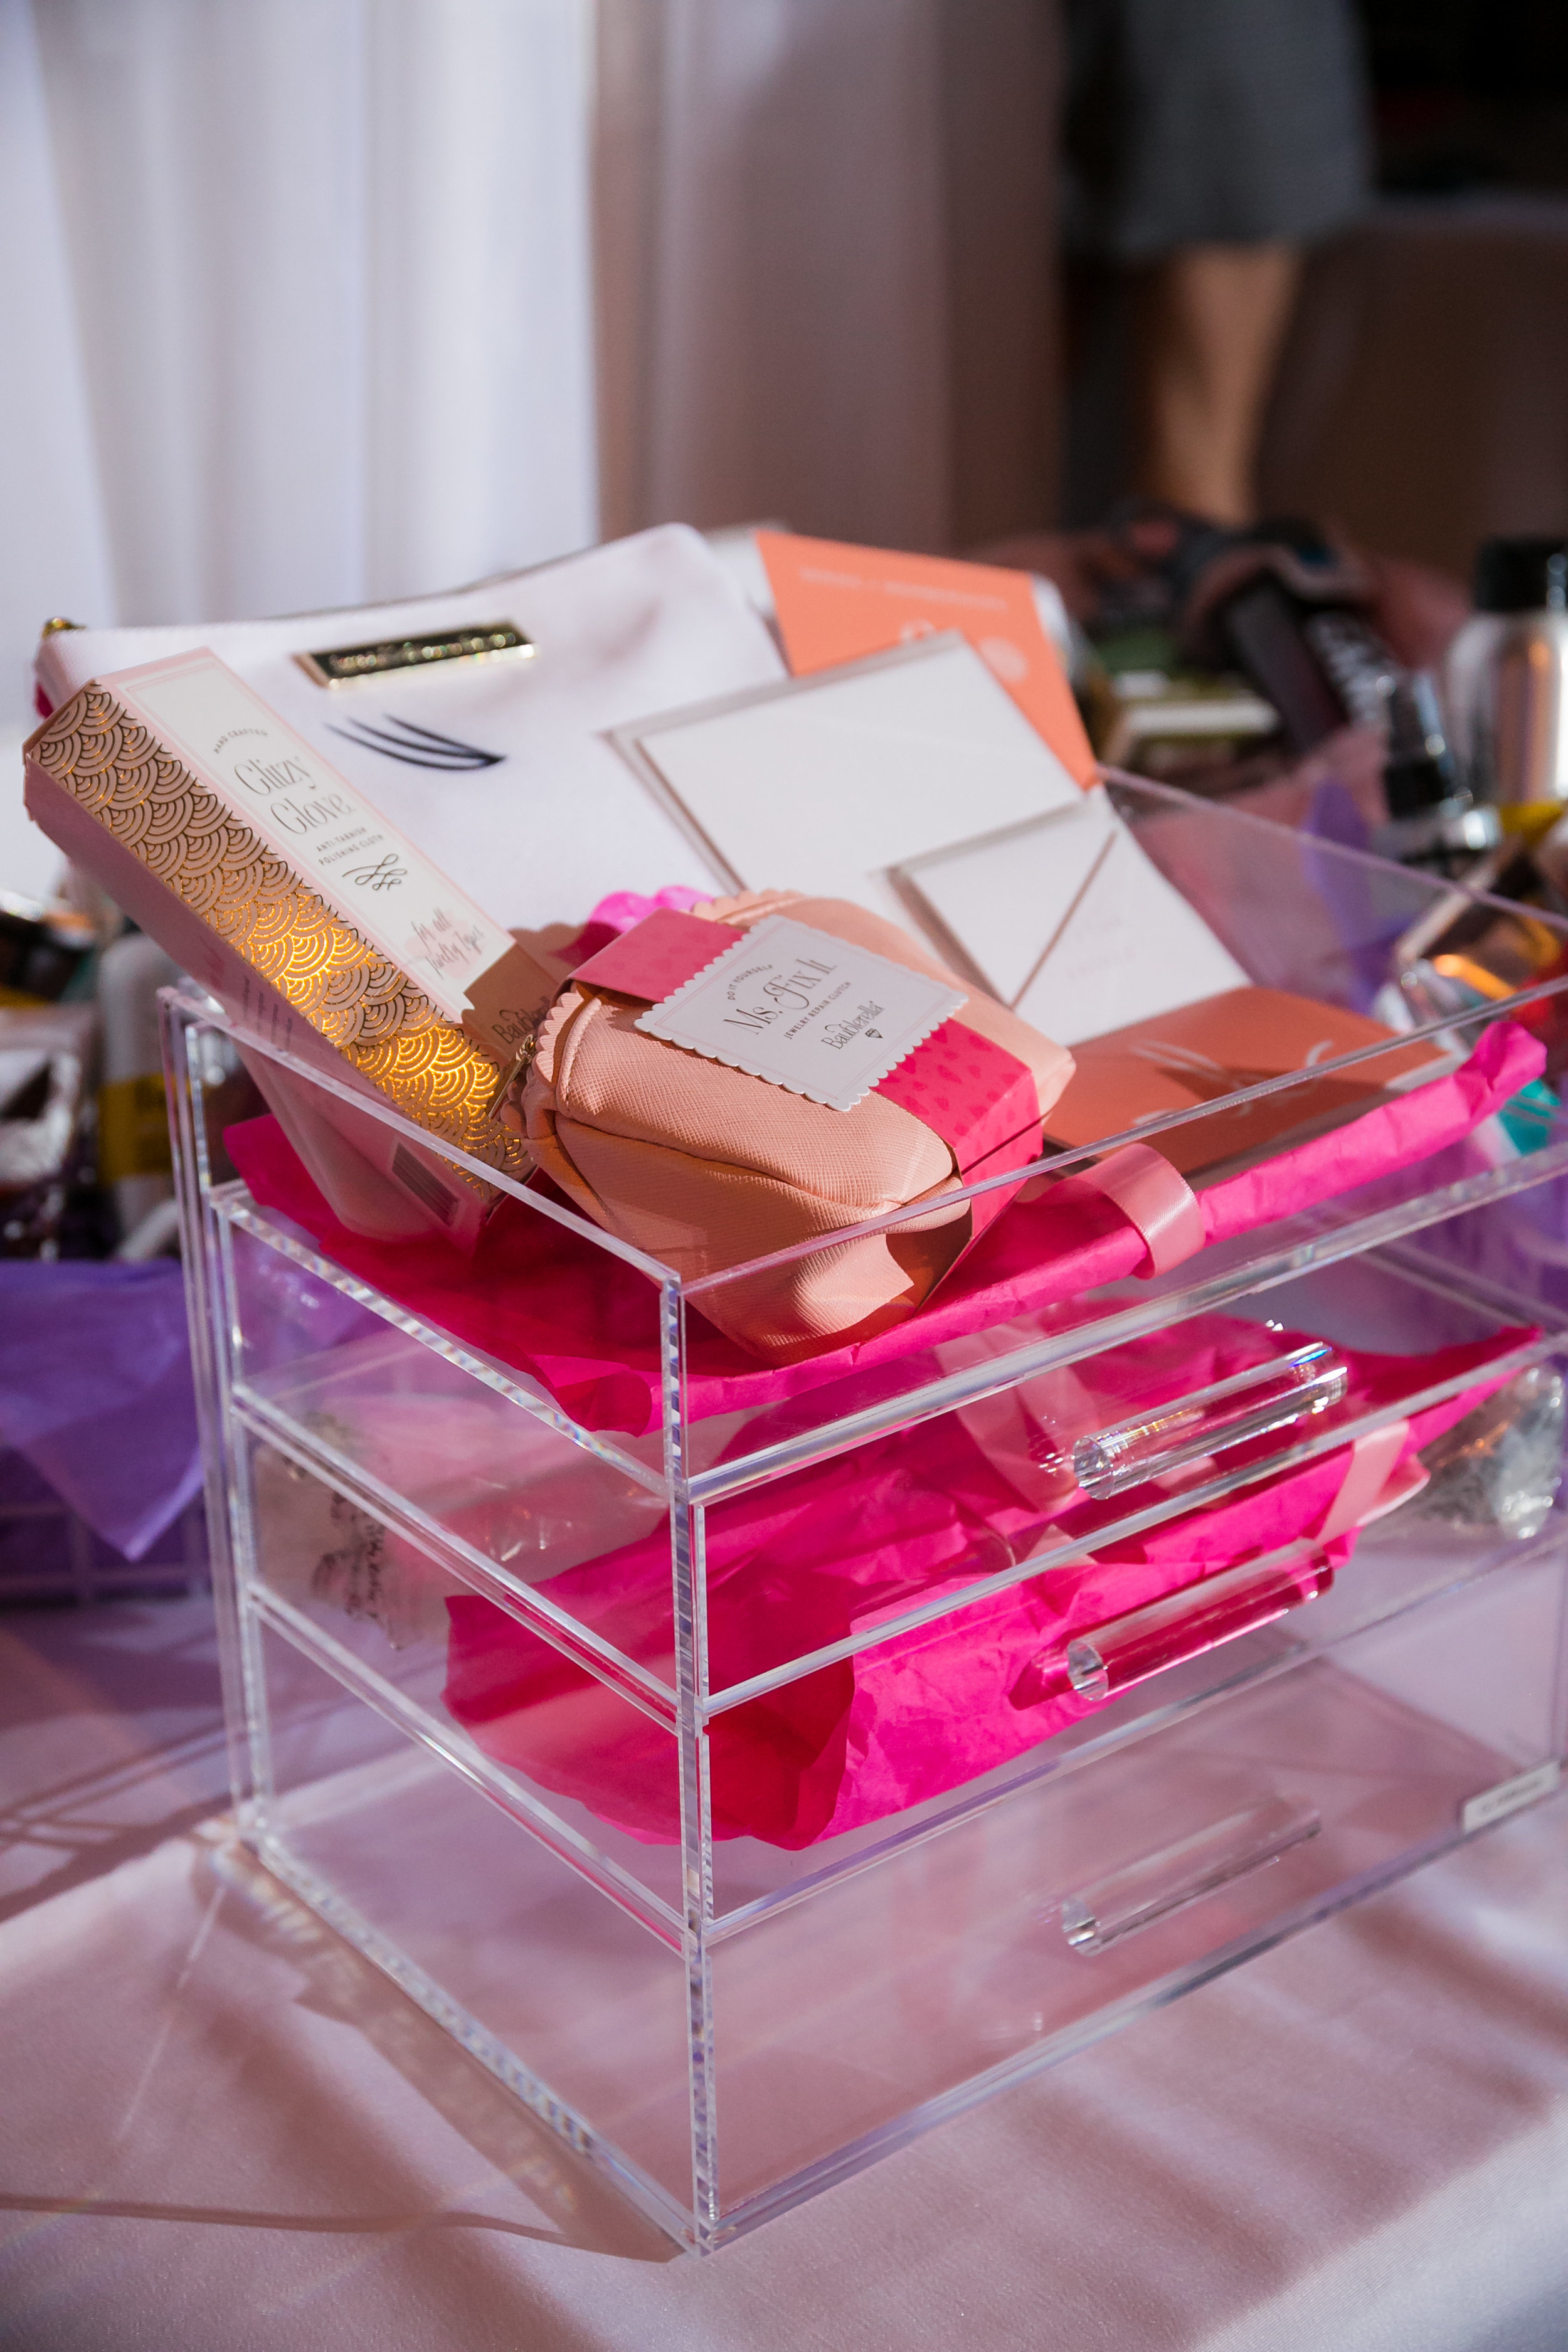 Our ISN'T SHE LOVELY basket included a  GLAM  boxes  GLAMpetite makeup box, Blaine Bowen + Fave4Hair products,  Baublerella  pieces, two of our LOVELY cards and a $250 gift card to  Blushington .